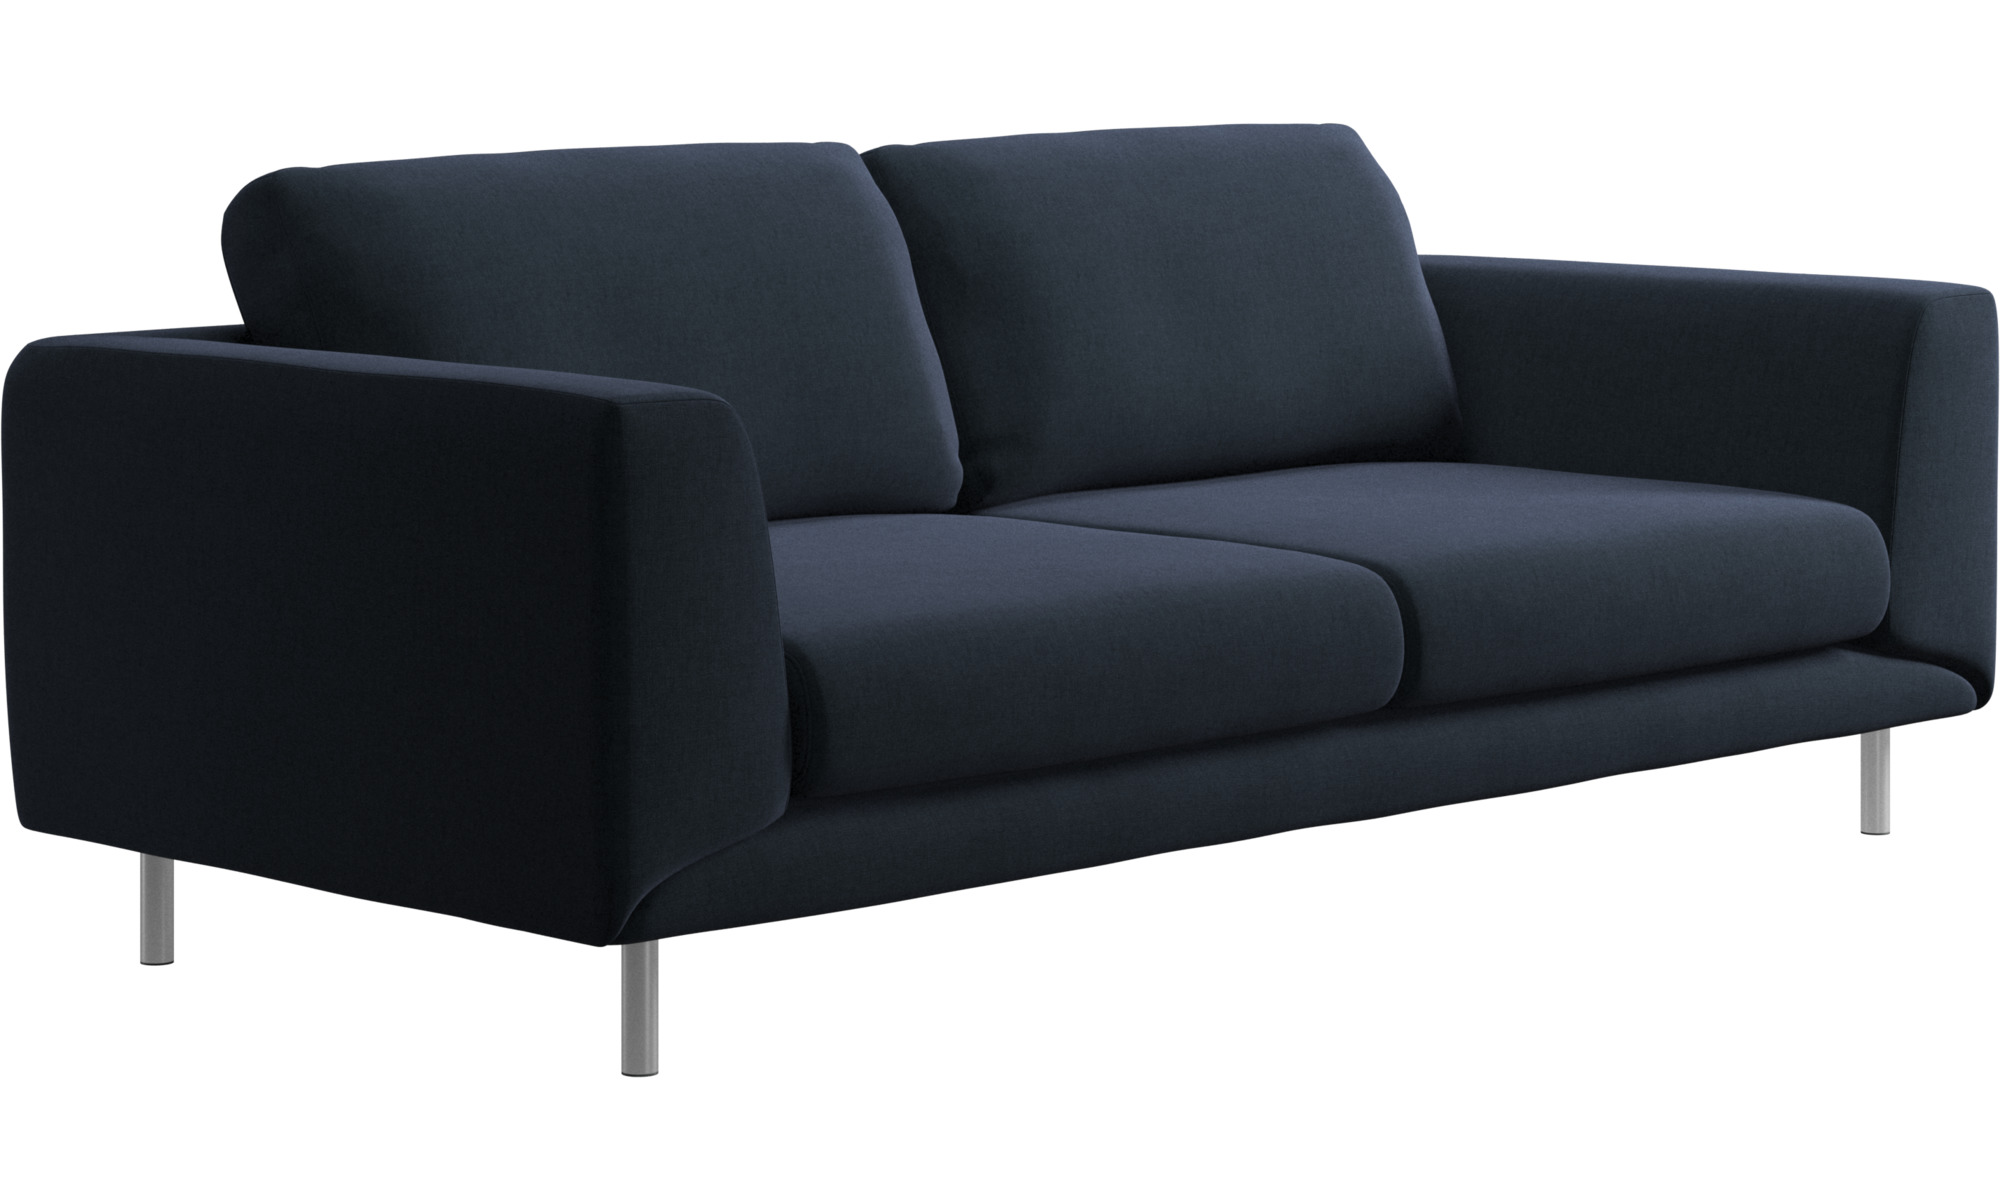 2 5 seater sofas fargo sofa boconcept. Black Bedroom Furniture Sets. Home Design Ideas